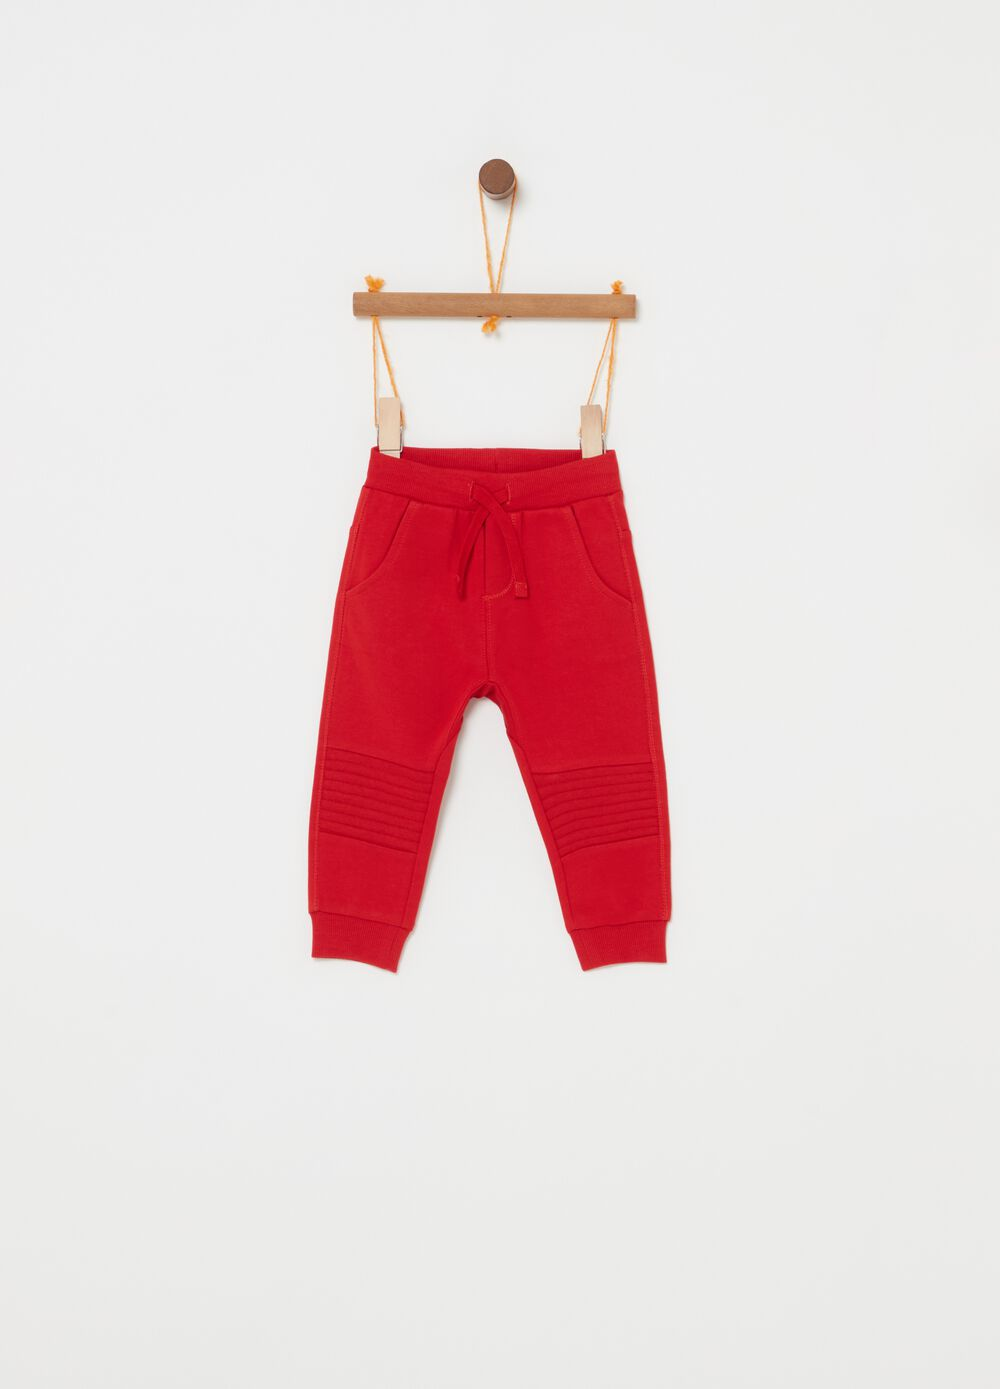 Trousers in 100% cotton fleece with stitching